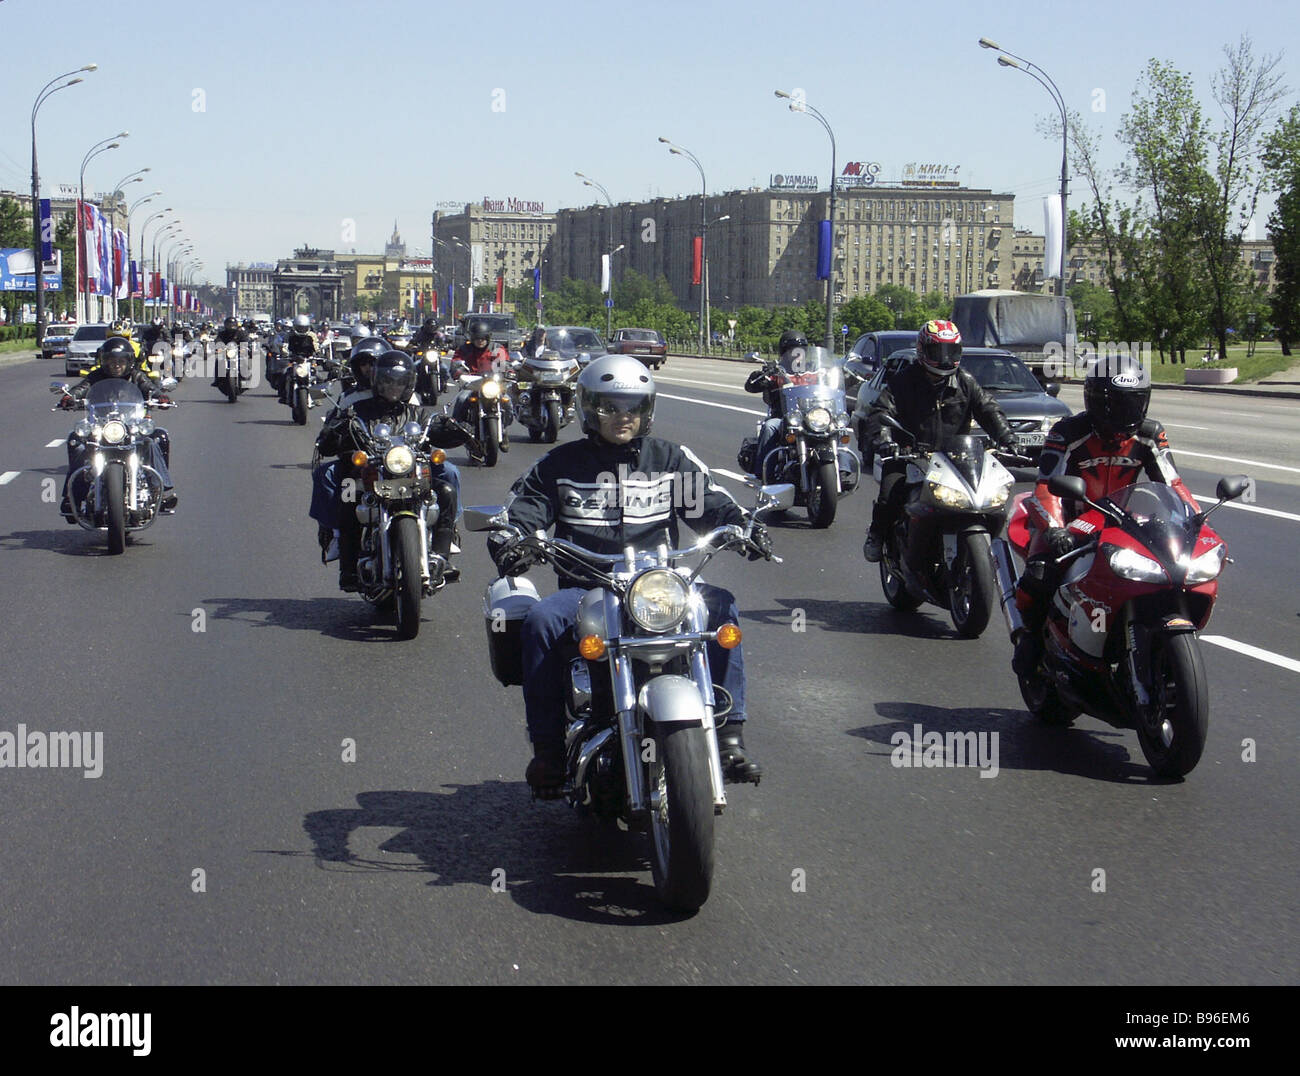 A Russia Day motor race - Stock Image